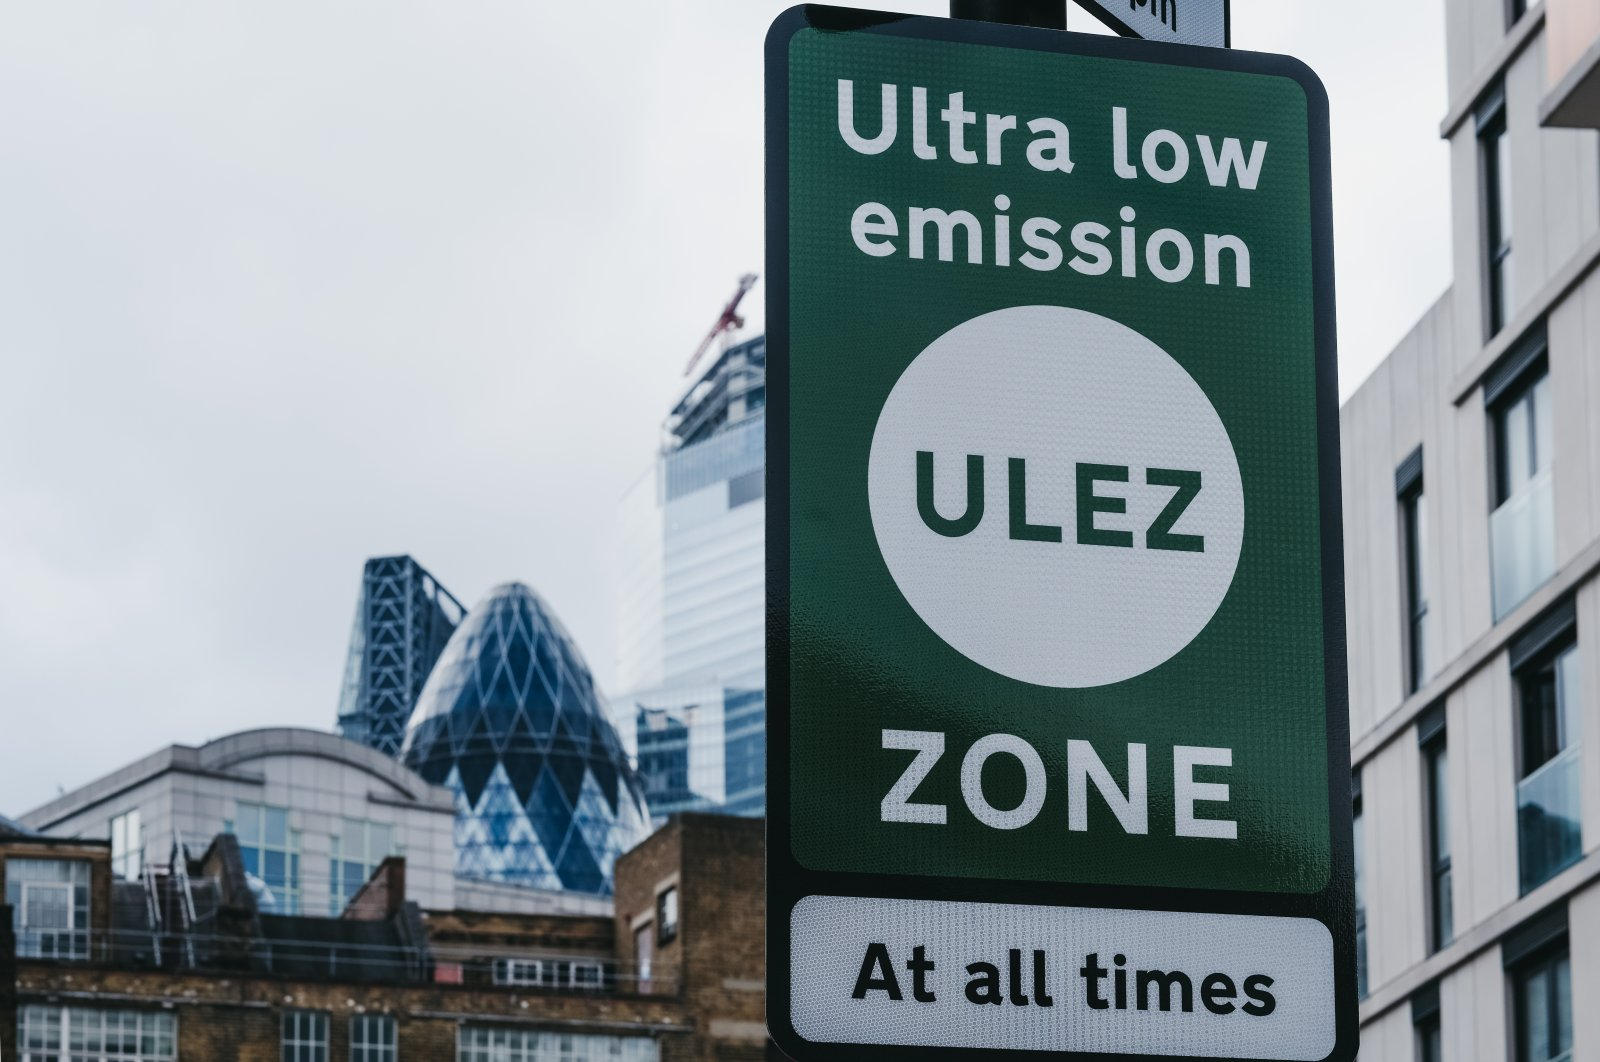 Signs indicating an Ultra Low Emission Zone (ULEZ) on a street in London, UK, June 15, 2019. (Shutterstock Photo)